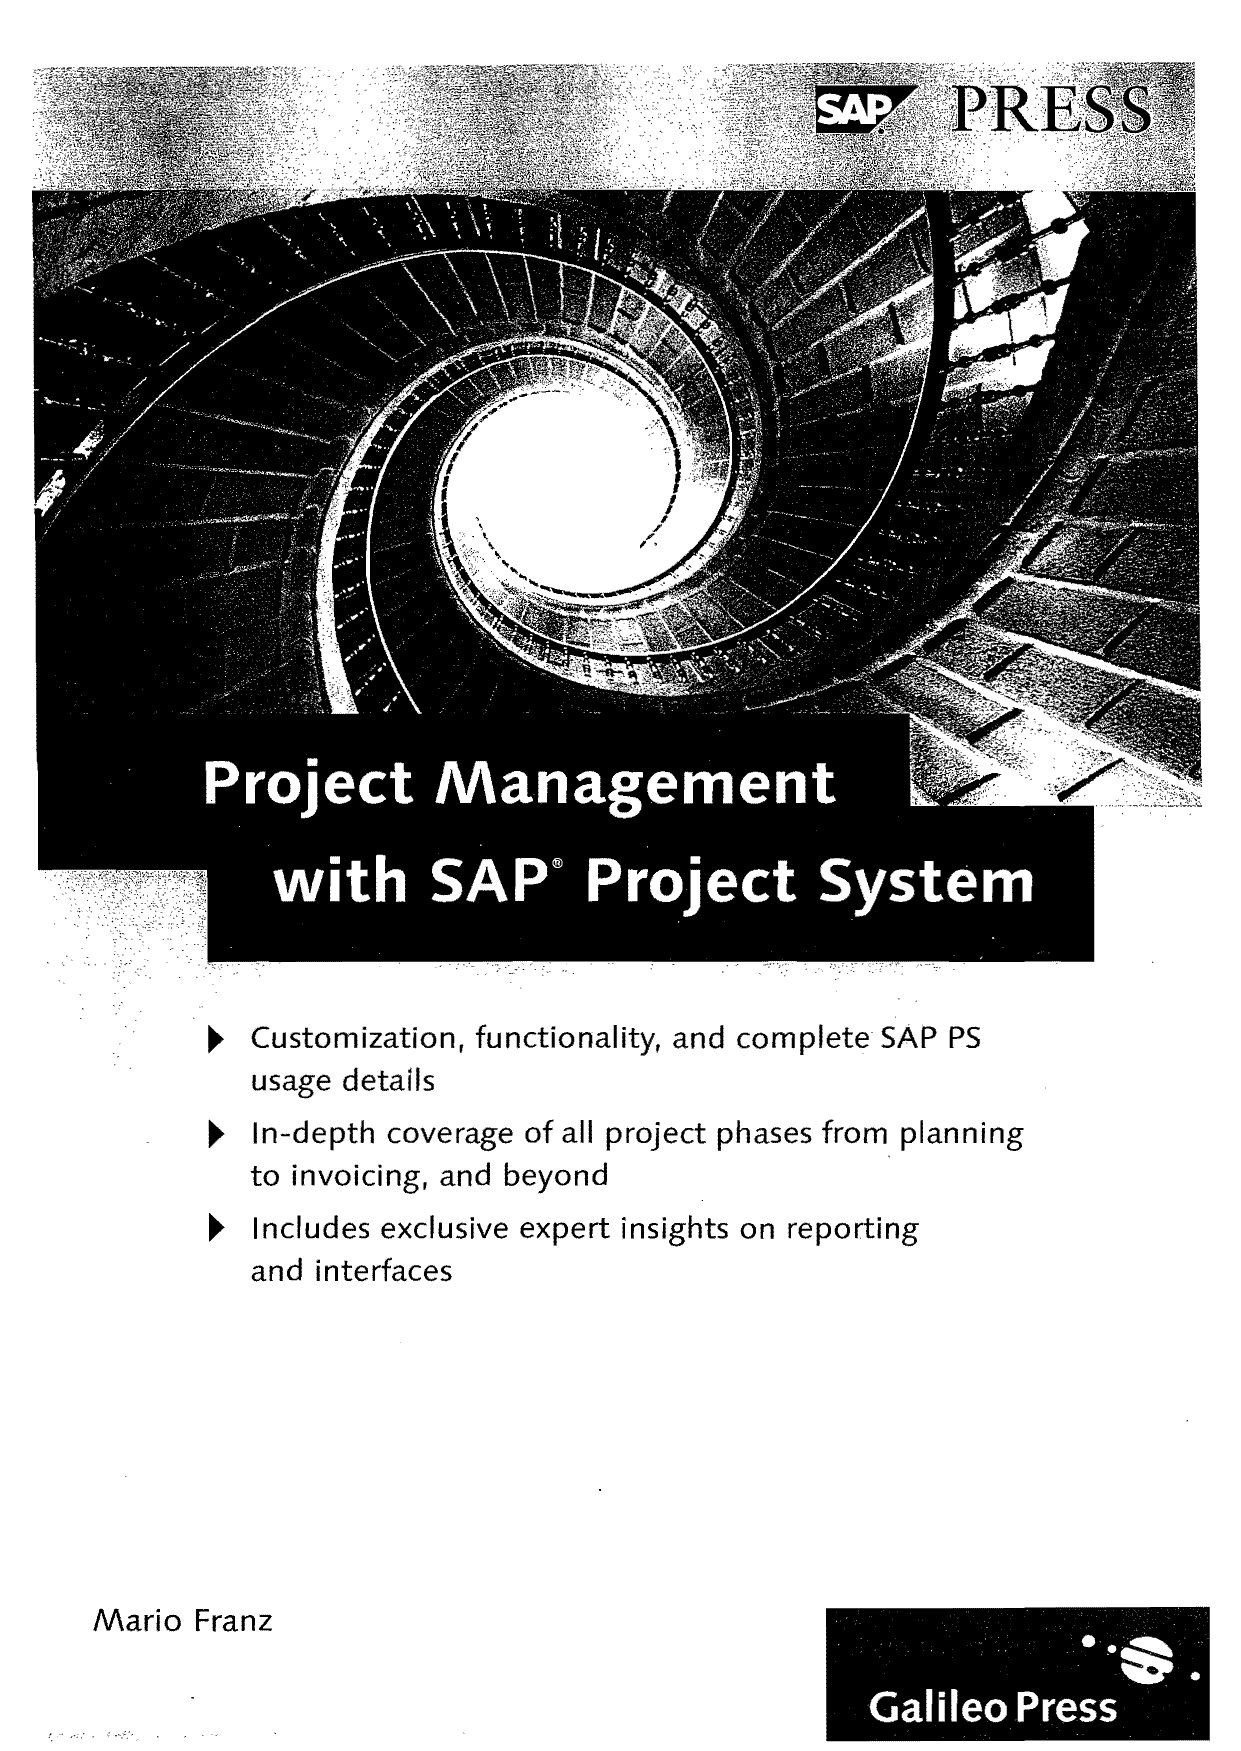 SAP Press - Project Management with SAP Project System (3rd Edition